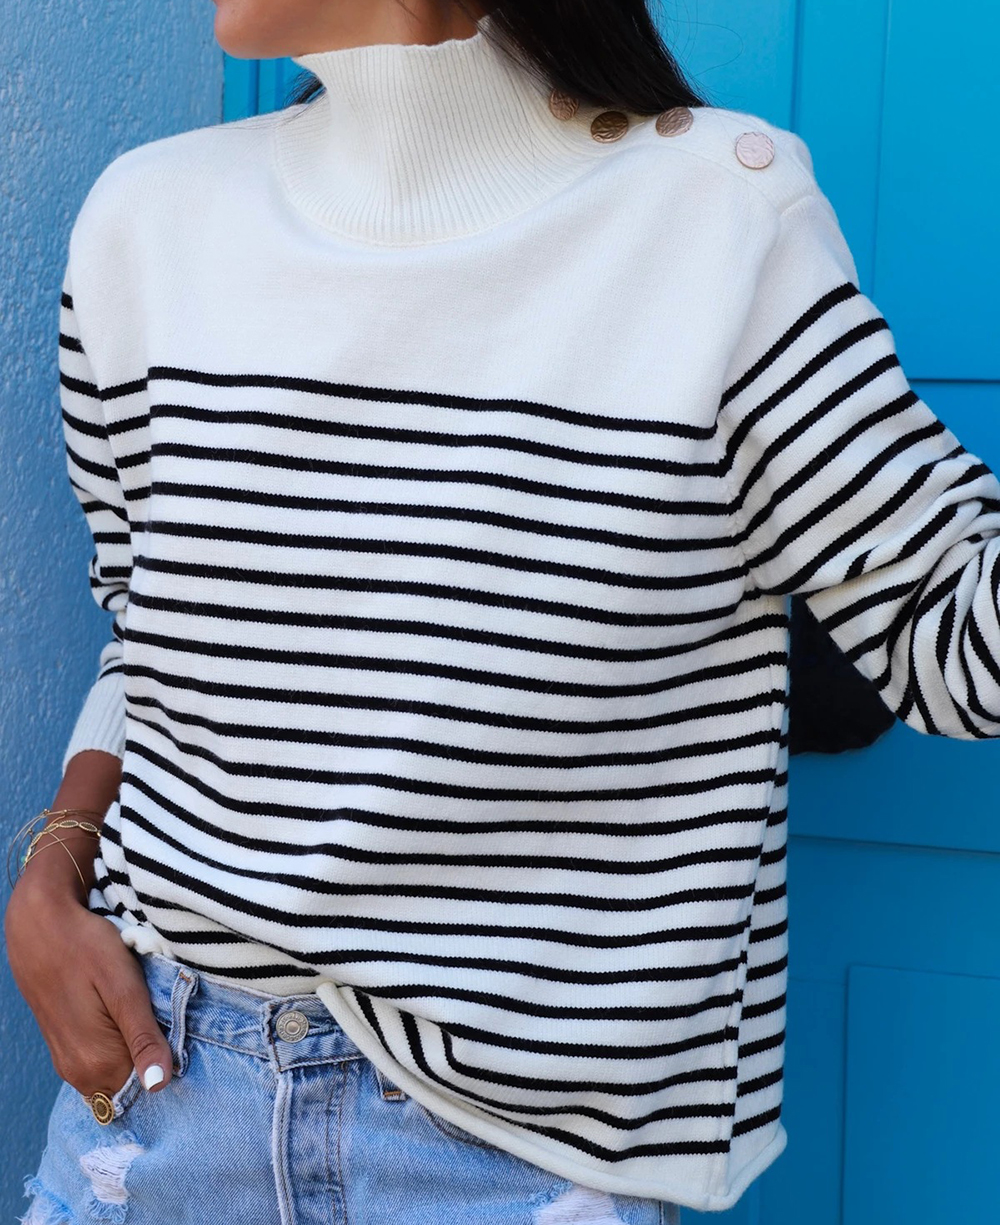 Autumn Winter Black Striped Sweater Women Knitted Pullover Long Sleeves Femme Jumper Thin Black White Woman Clothes